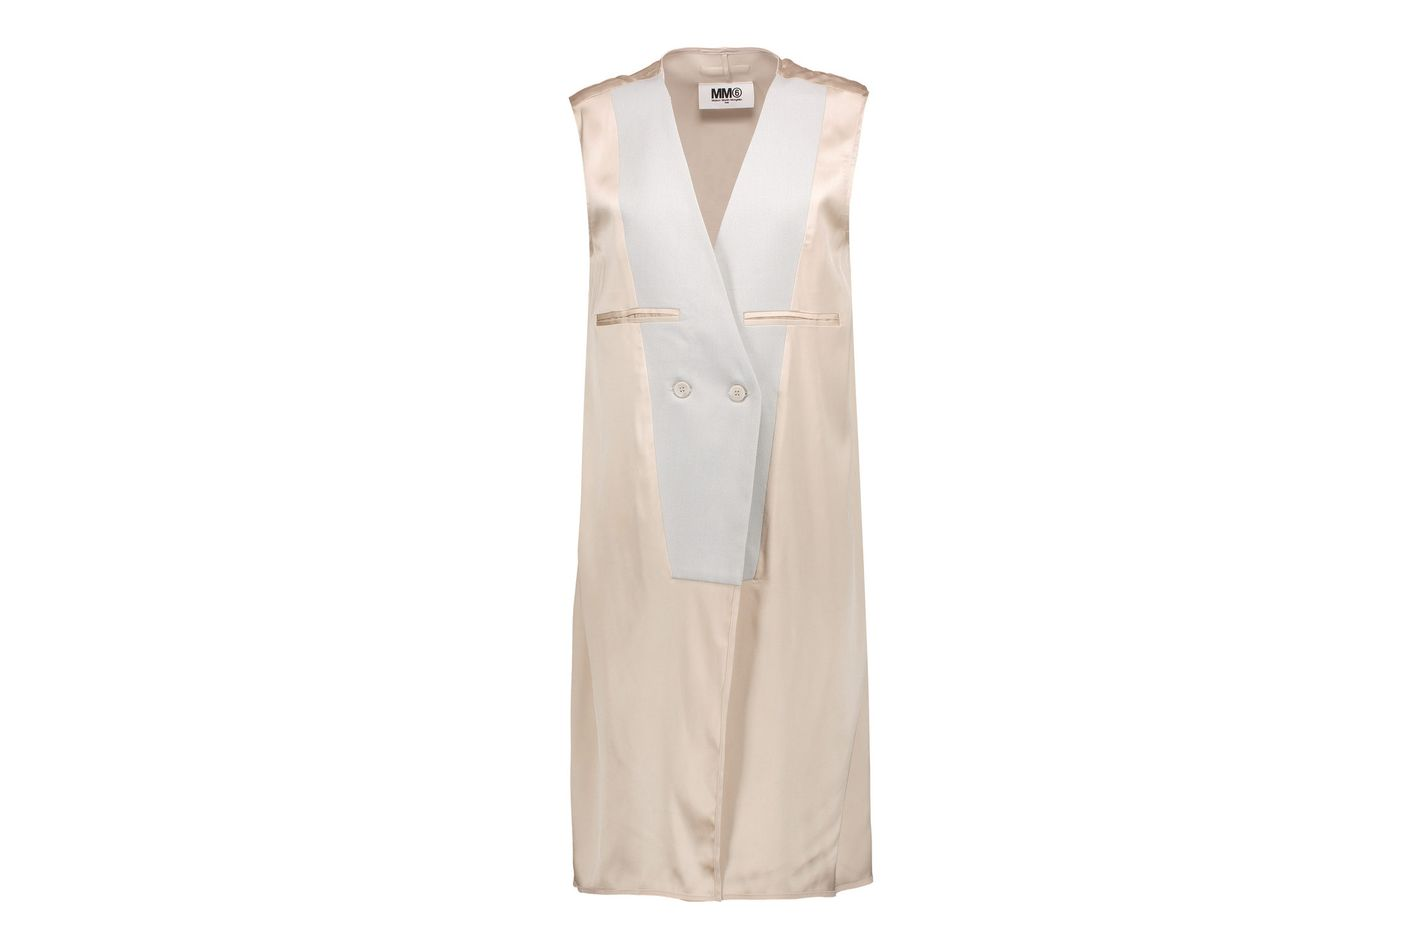 MM6 Martin Margiela woven-paneled satin gilet